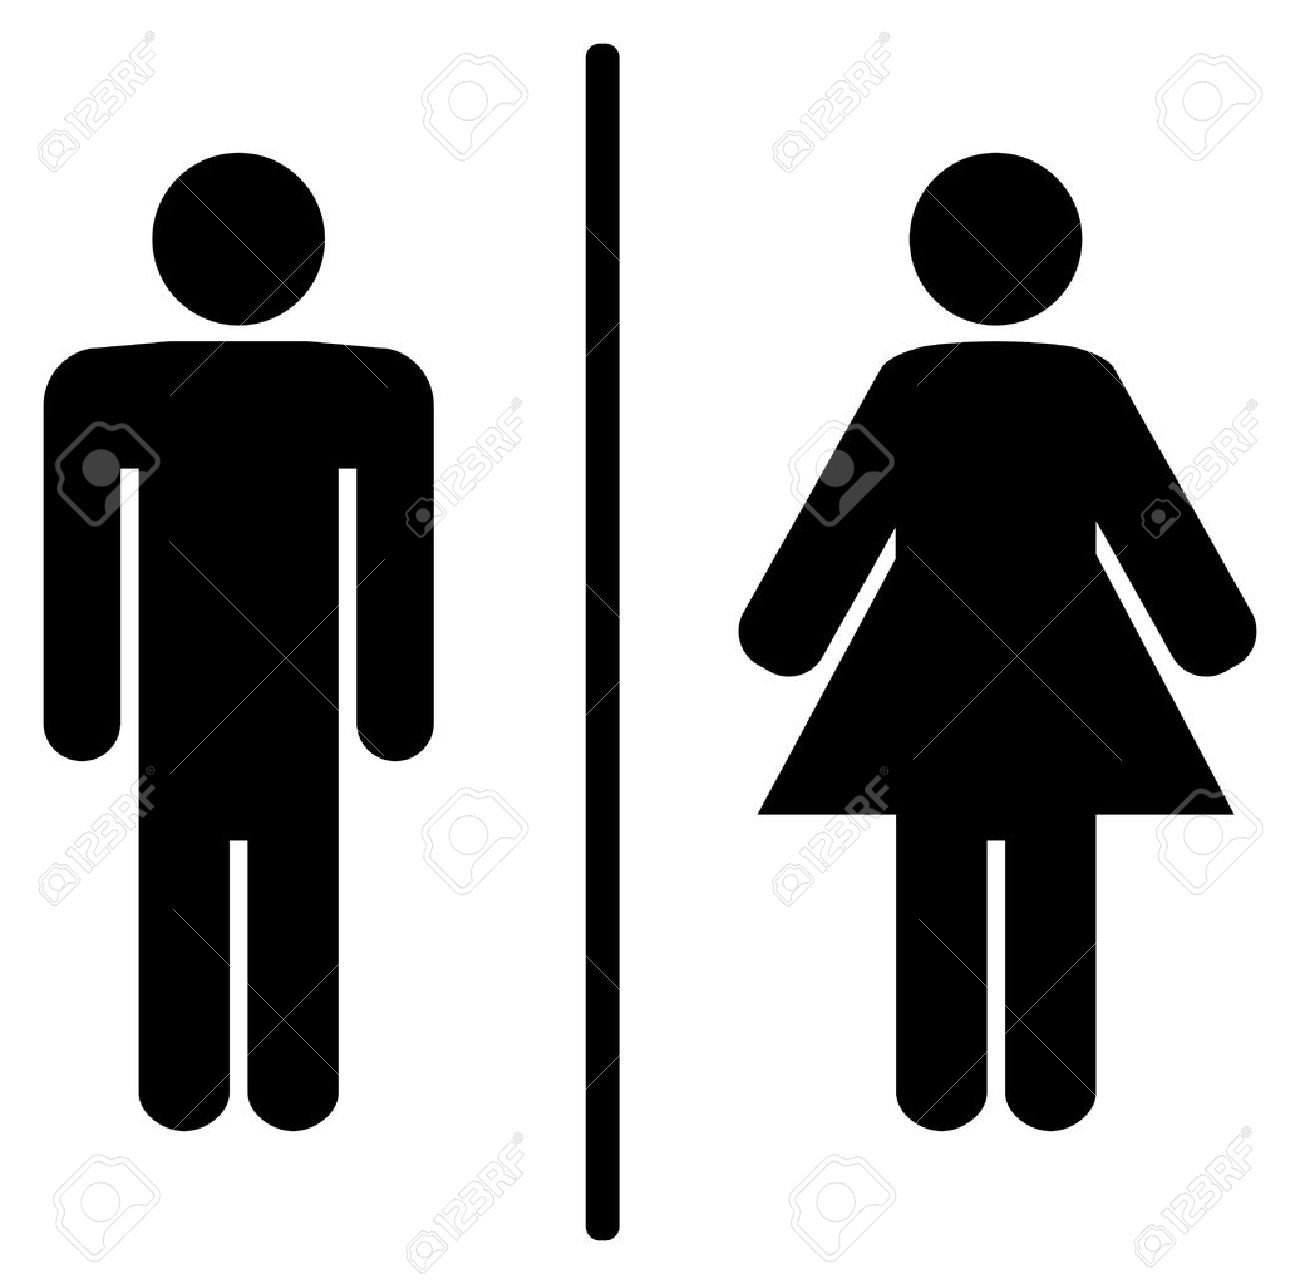 Girls bathroom sign outline - Bathroom Sign A Man And A Lady Toilet Sign